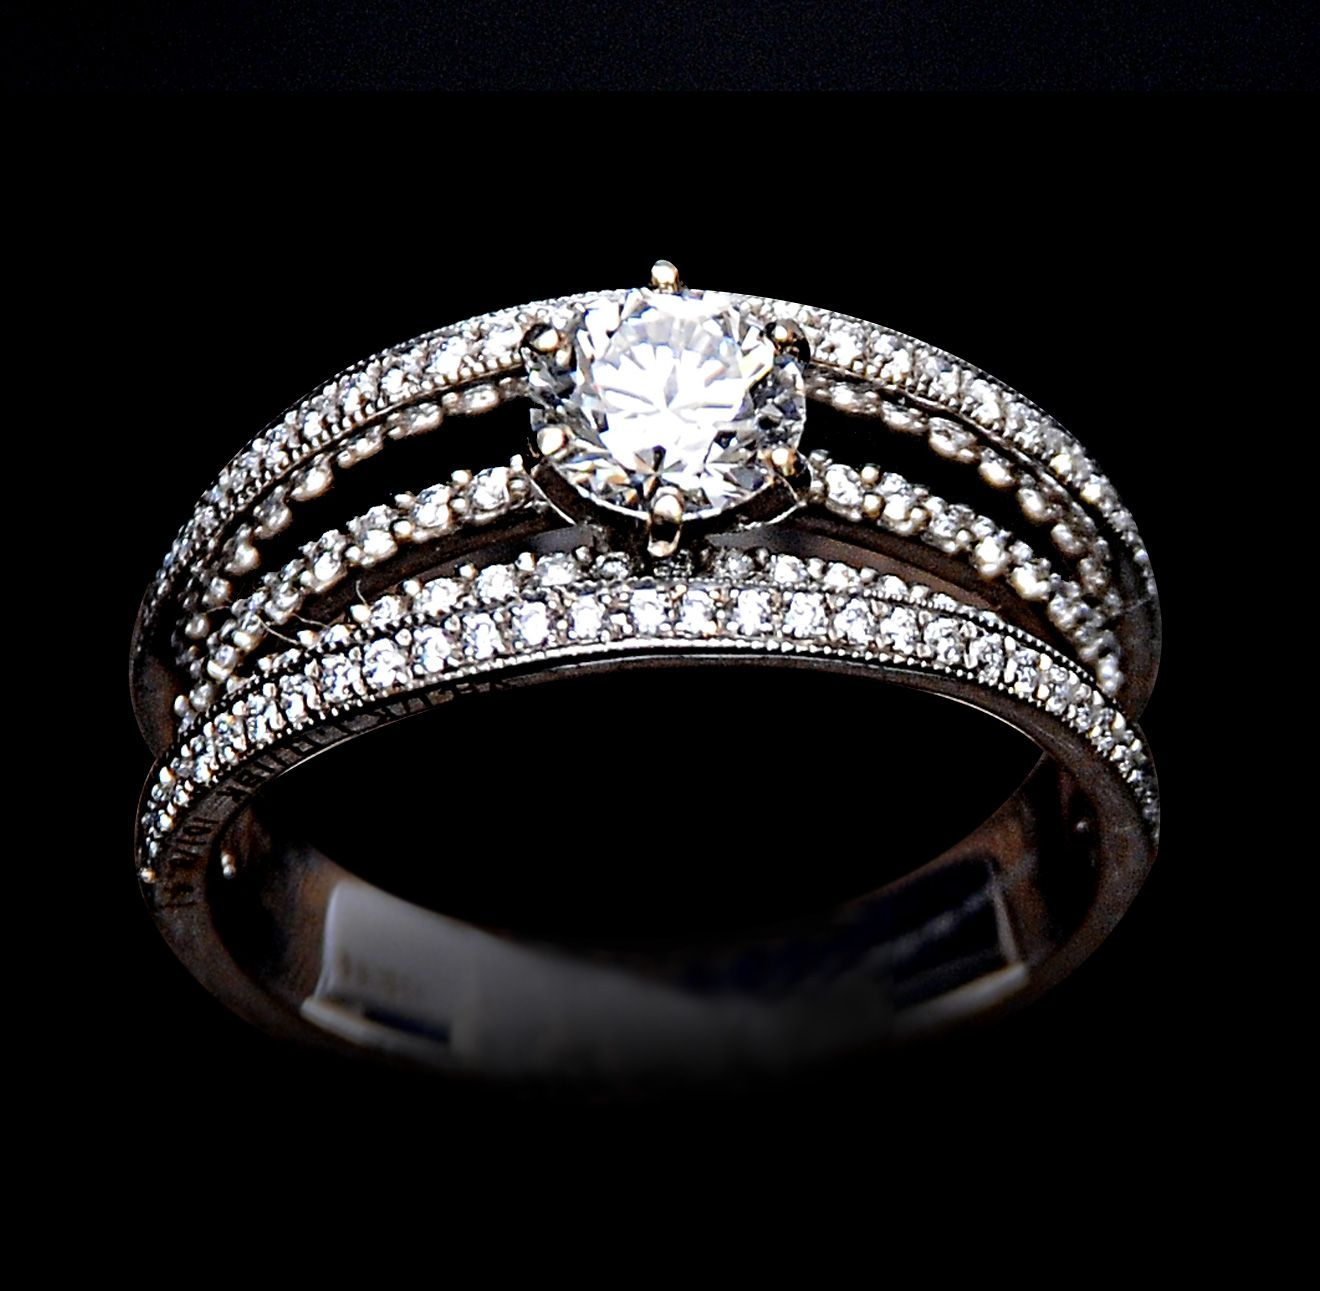 wedding rings online wholesale diamond jewelry Buy high quality wholesale diamonds and fine jewelry online